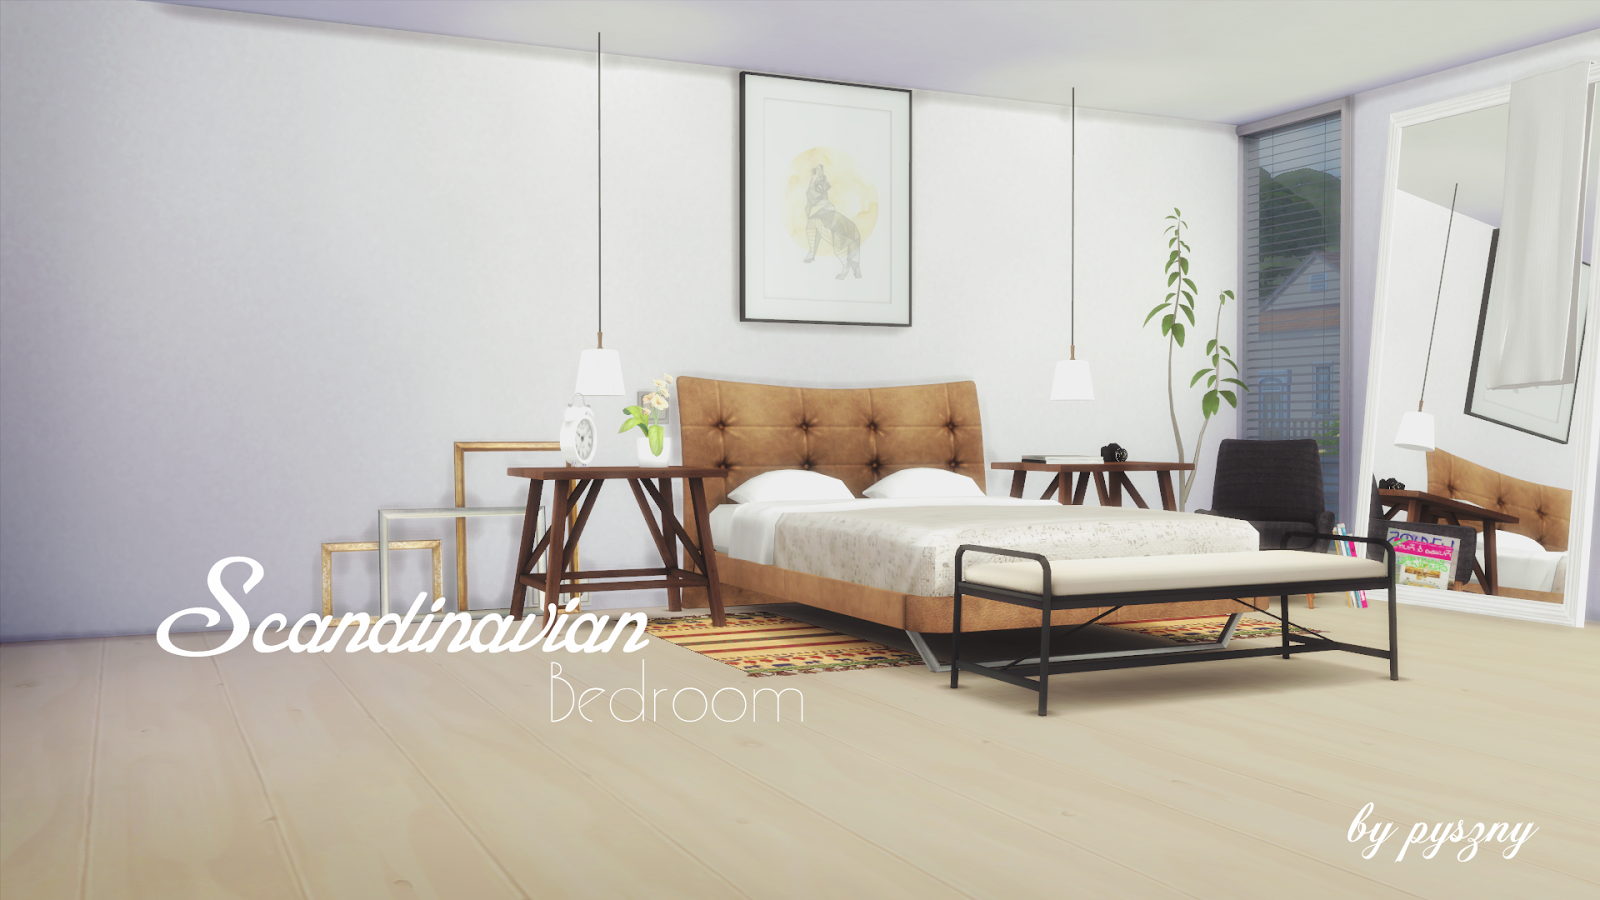 Bedroom Pics Scandinavian Bedroom New Set Updated